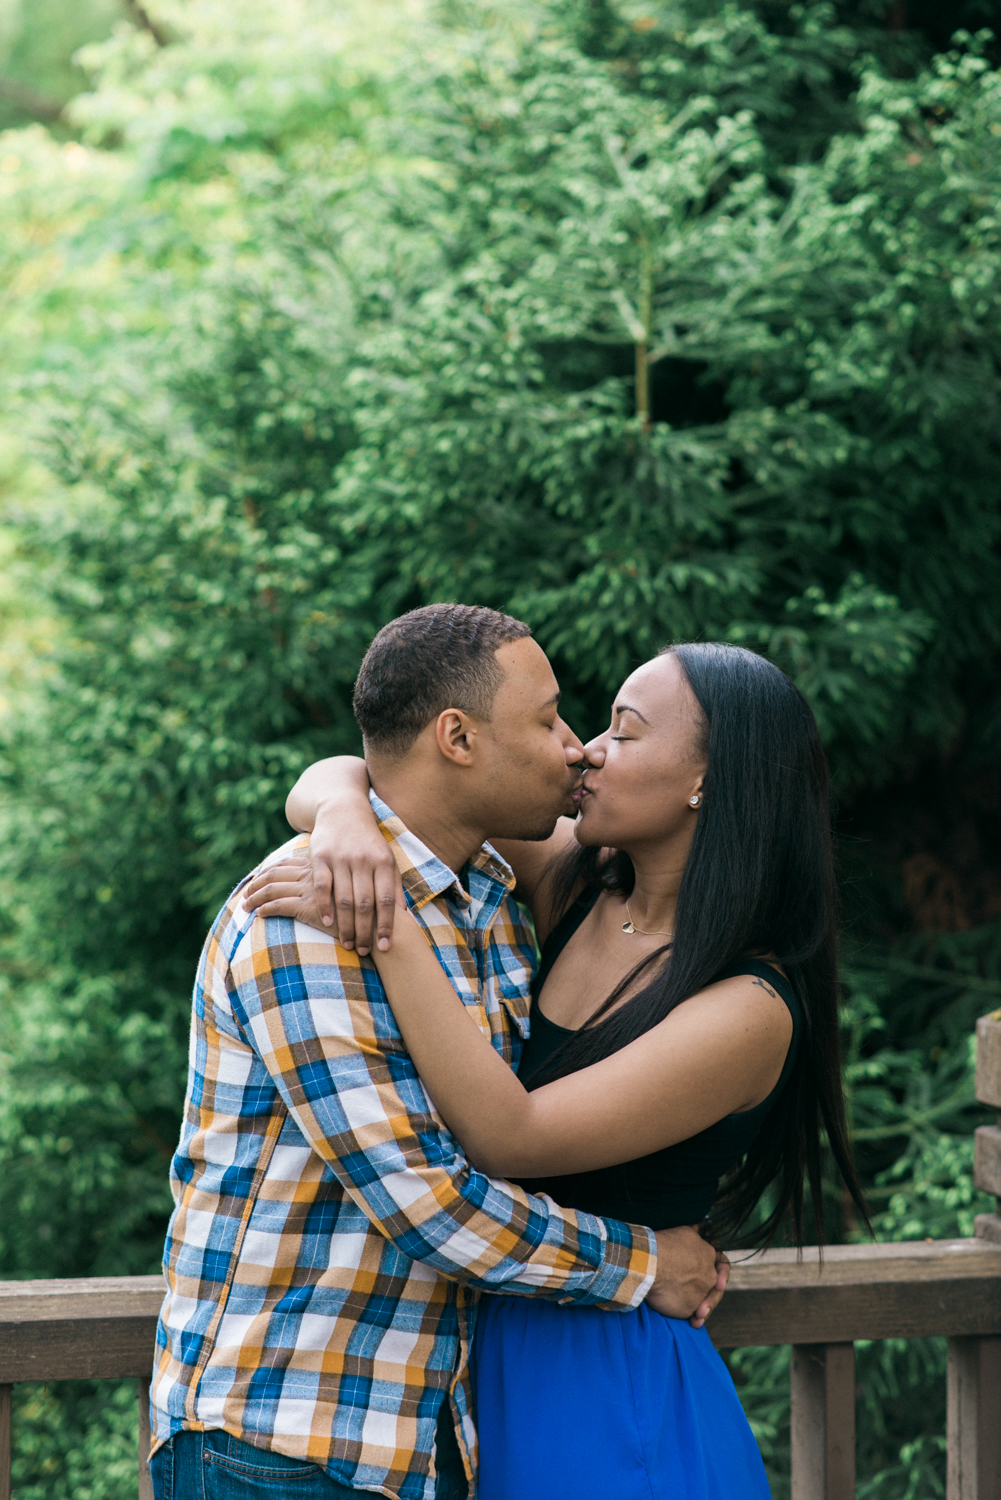 portland-engagement-photographer-wsu-graduation-portrait-crystal-springs-rhododendron-garden-shelley-marie-photo-31